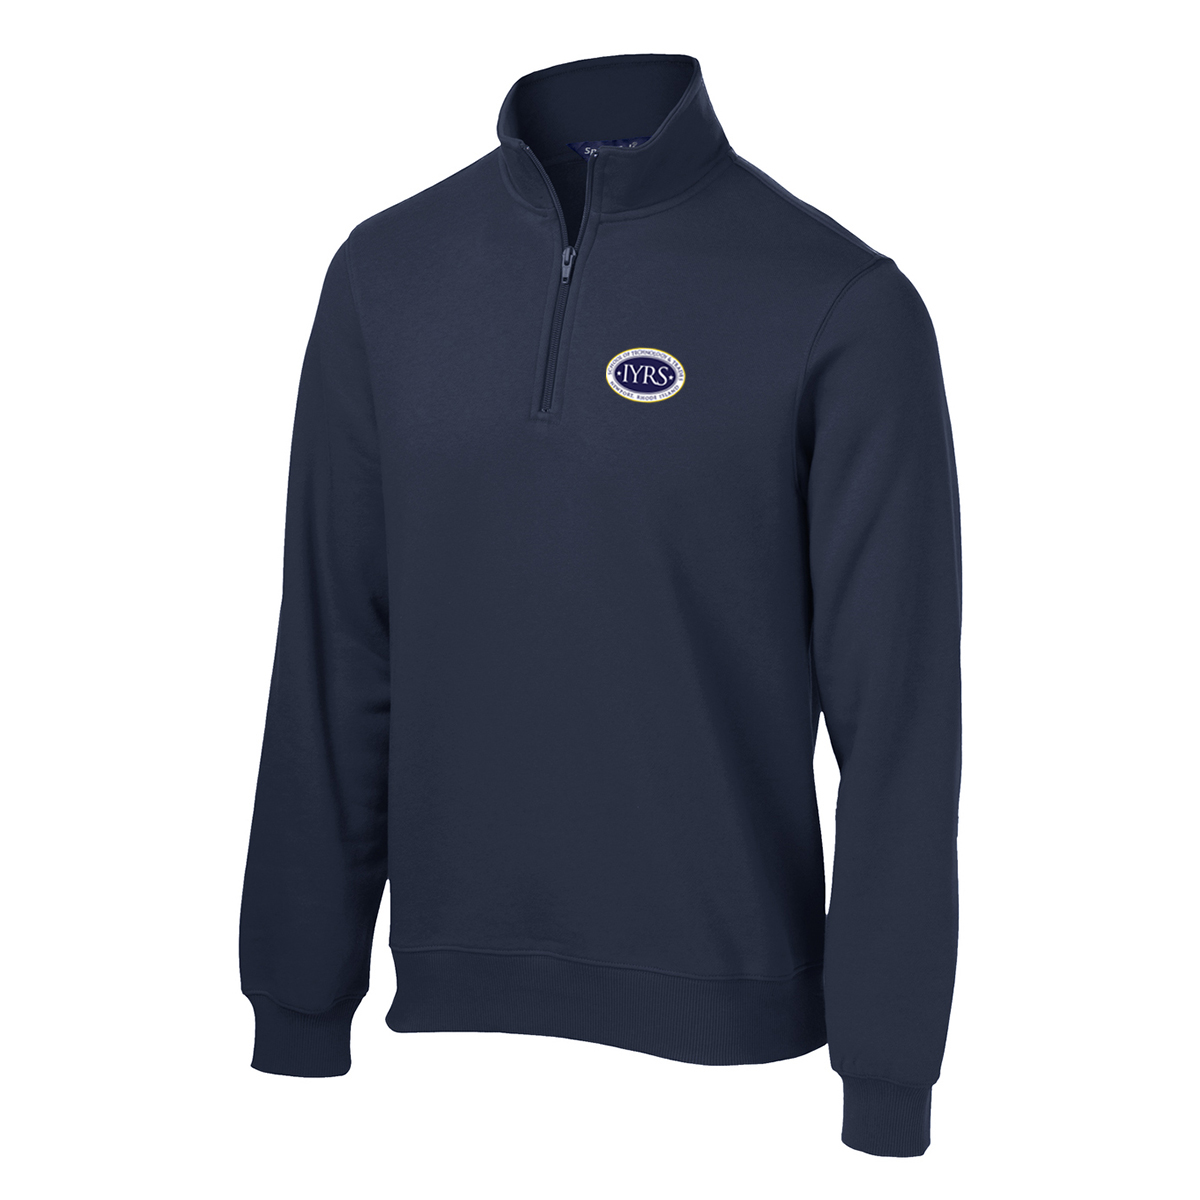 International Yacht Restoration School - Men's 1/4 Zip Sweatshirt